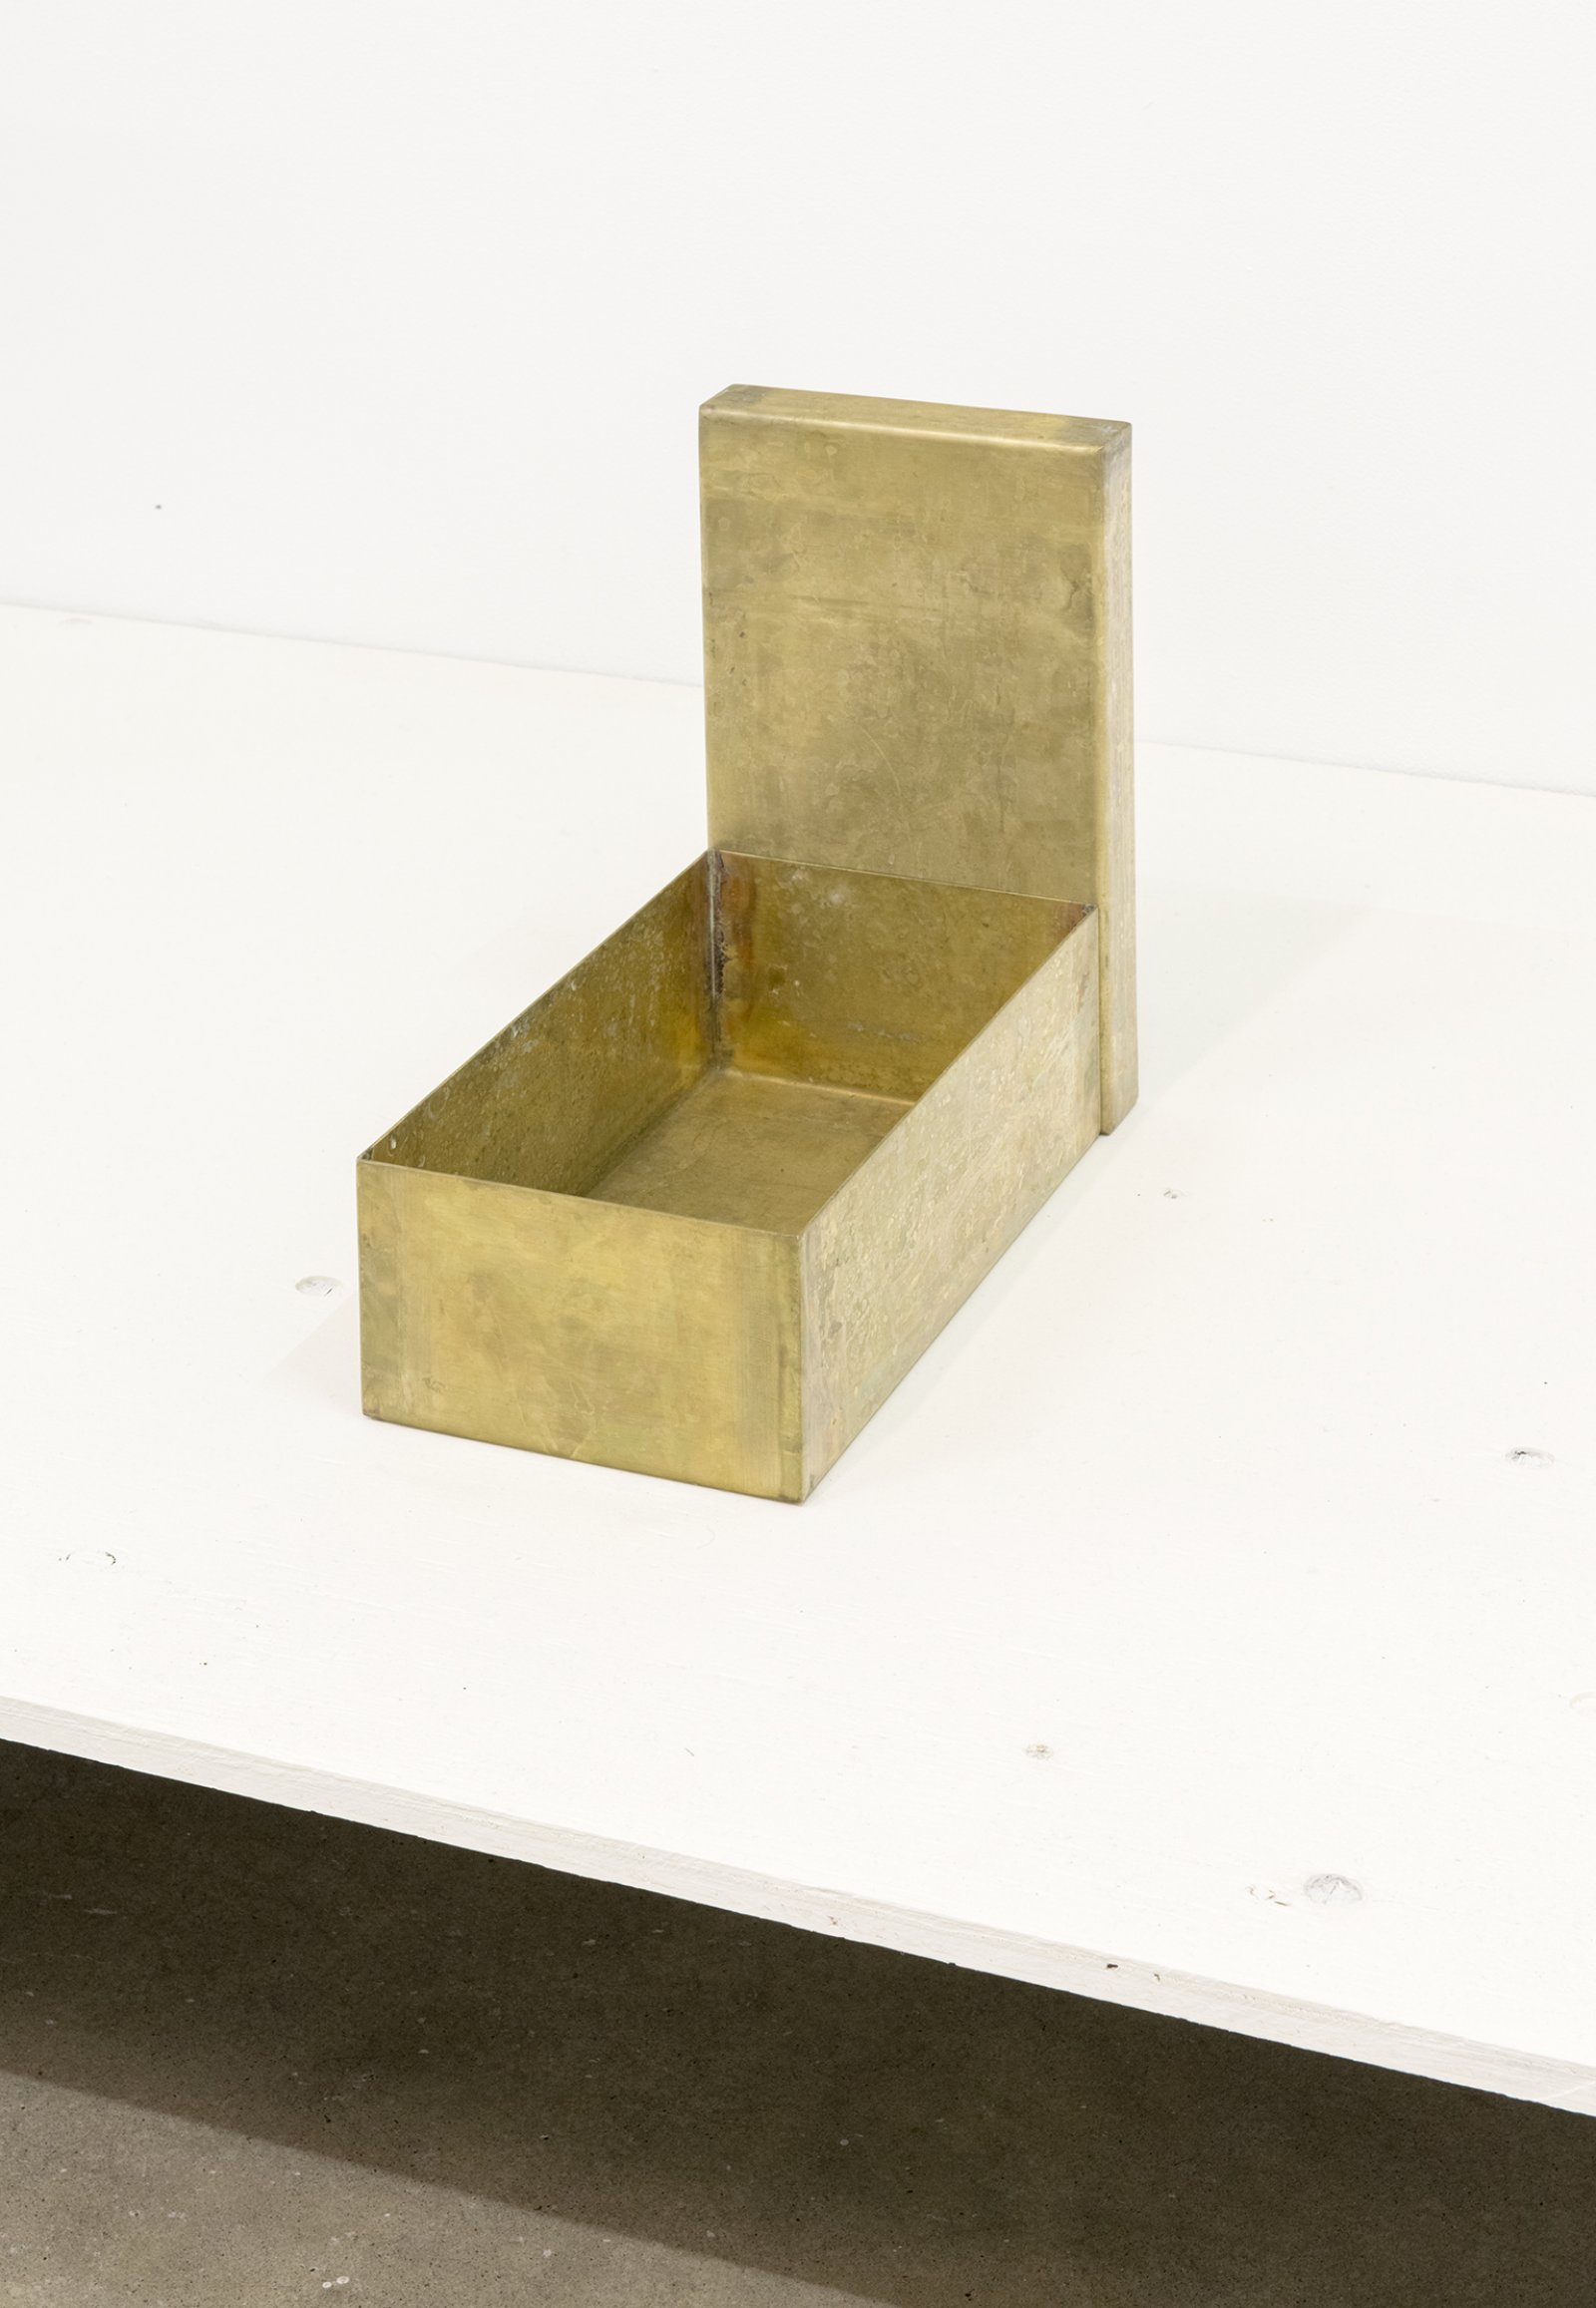 Gareth Moore, Shoebox (Brass), 2013, brass, urine (patina), 12 x 7 x 13 in. (30 x 17 x 34 cm) by Ashes Withyman